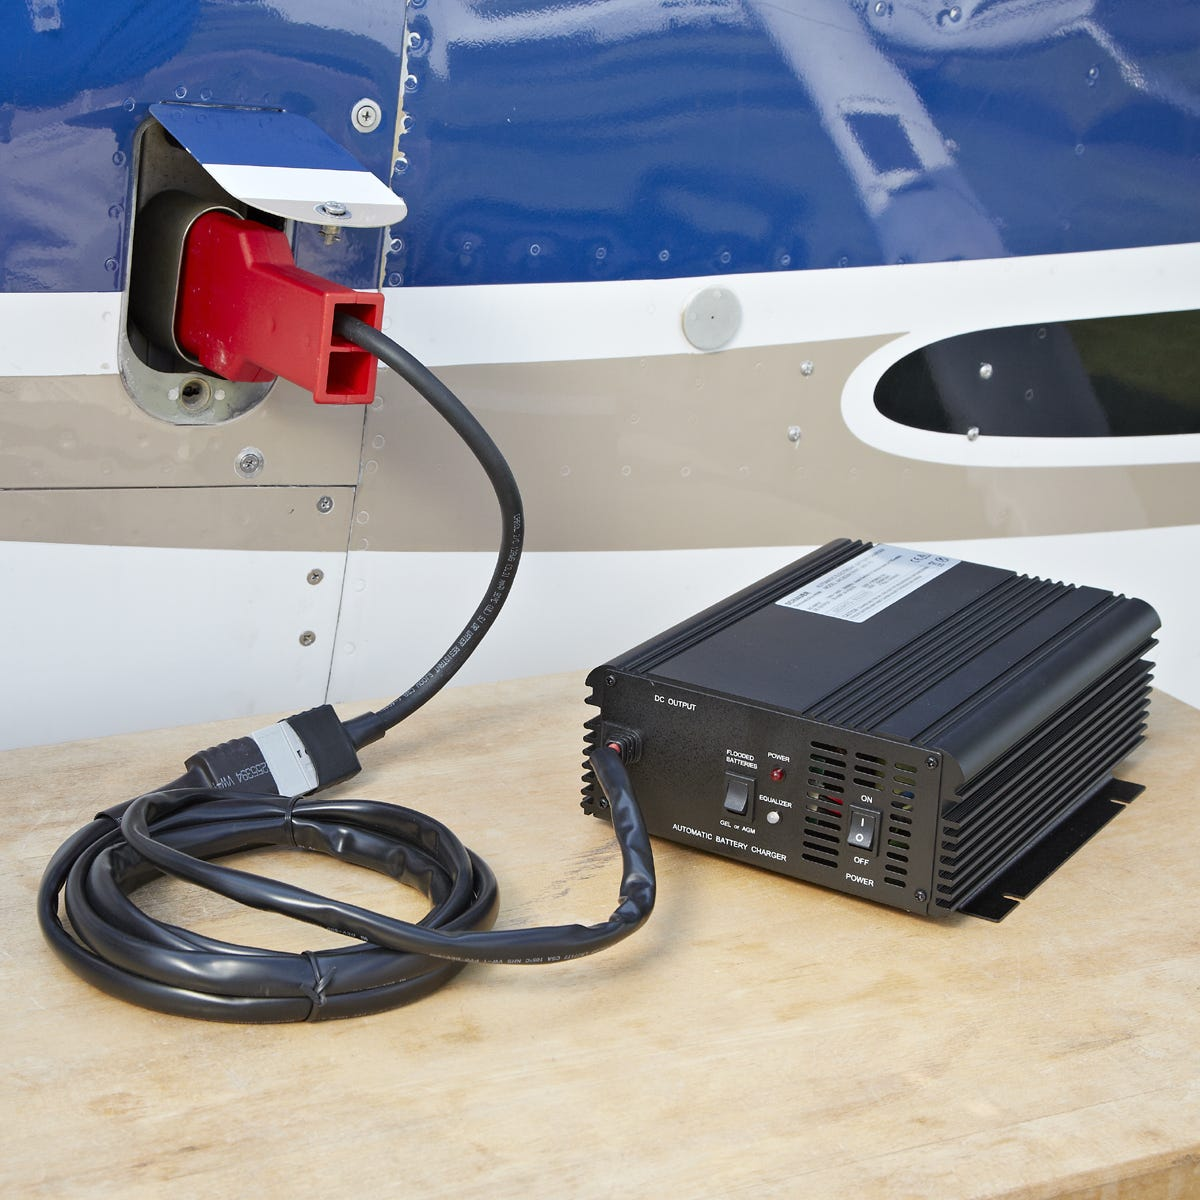 12v power supply and battery charger with 3 pin plug. Black Bedroom Furniture Sets. Home Design Ideas